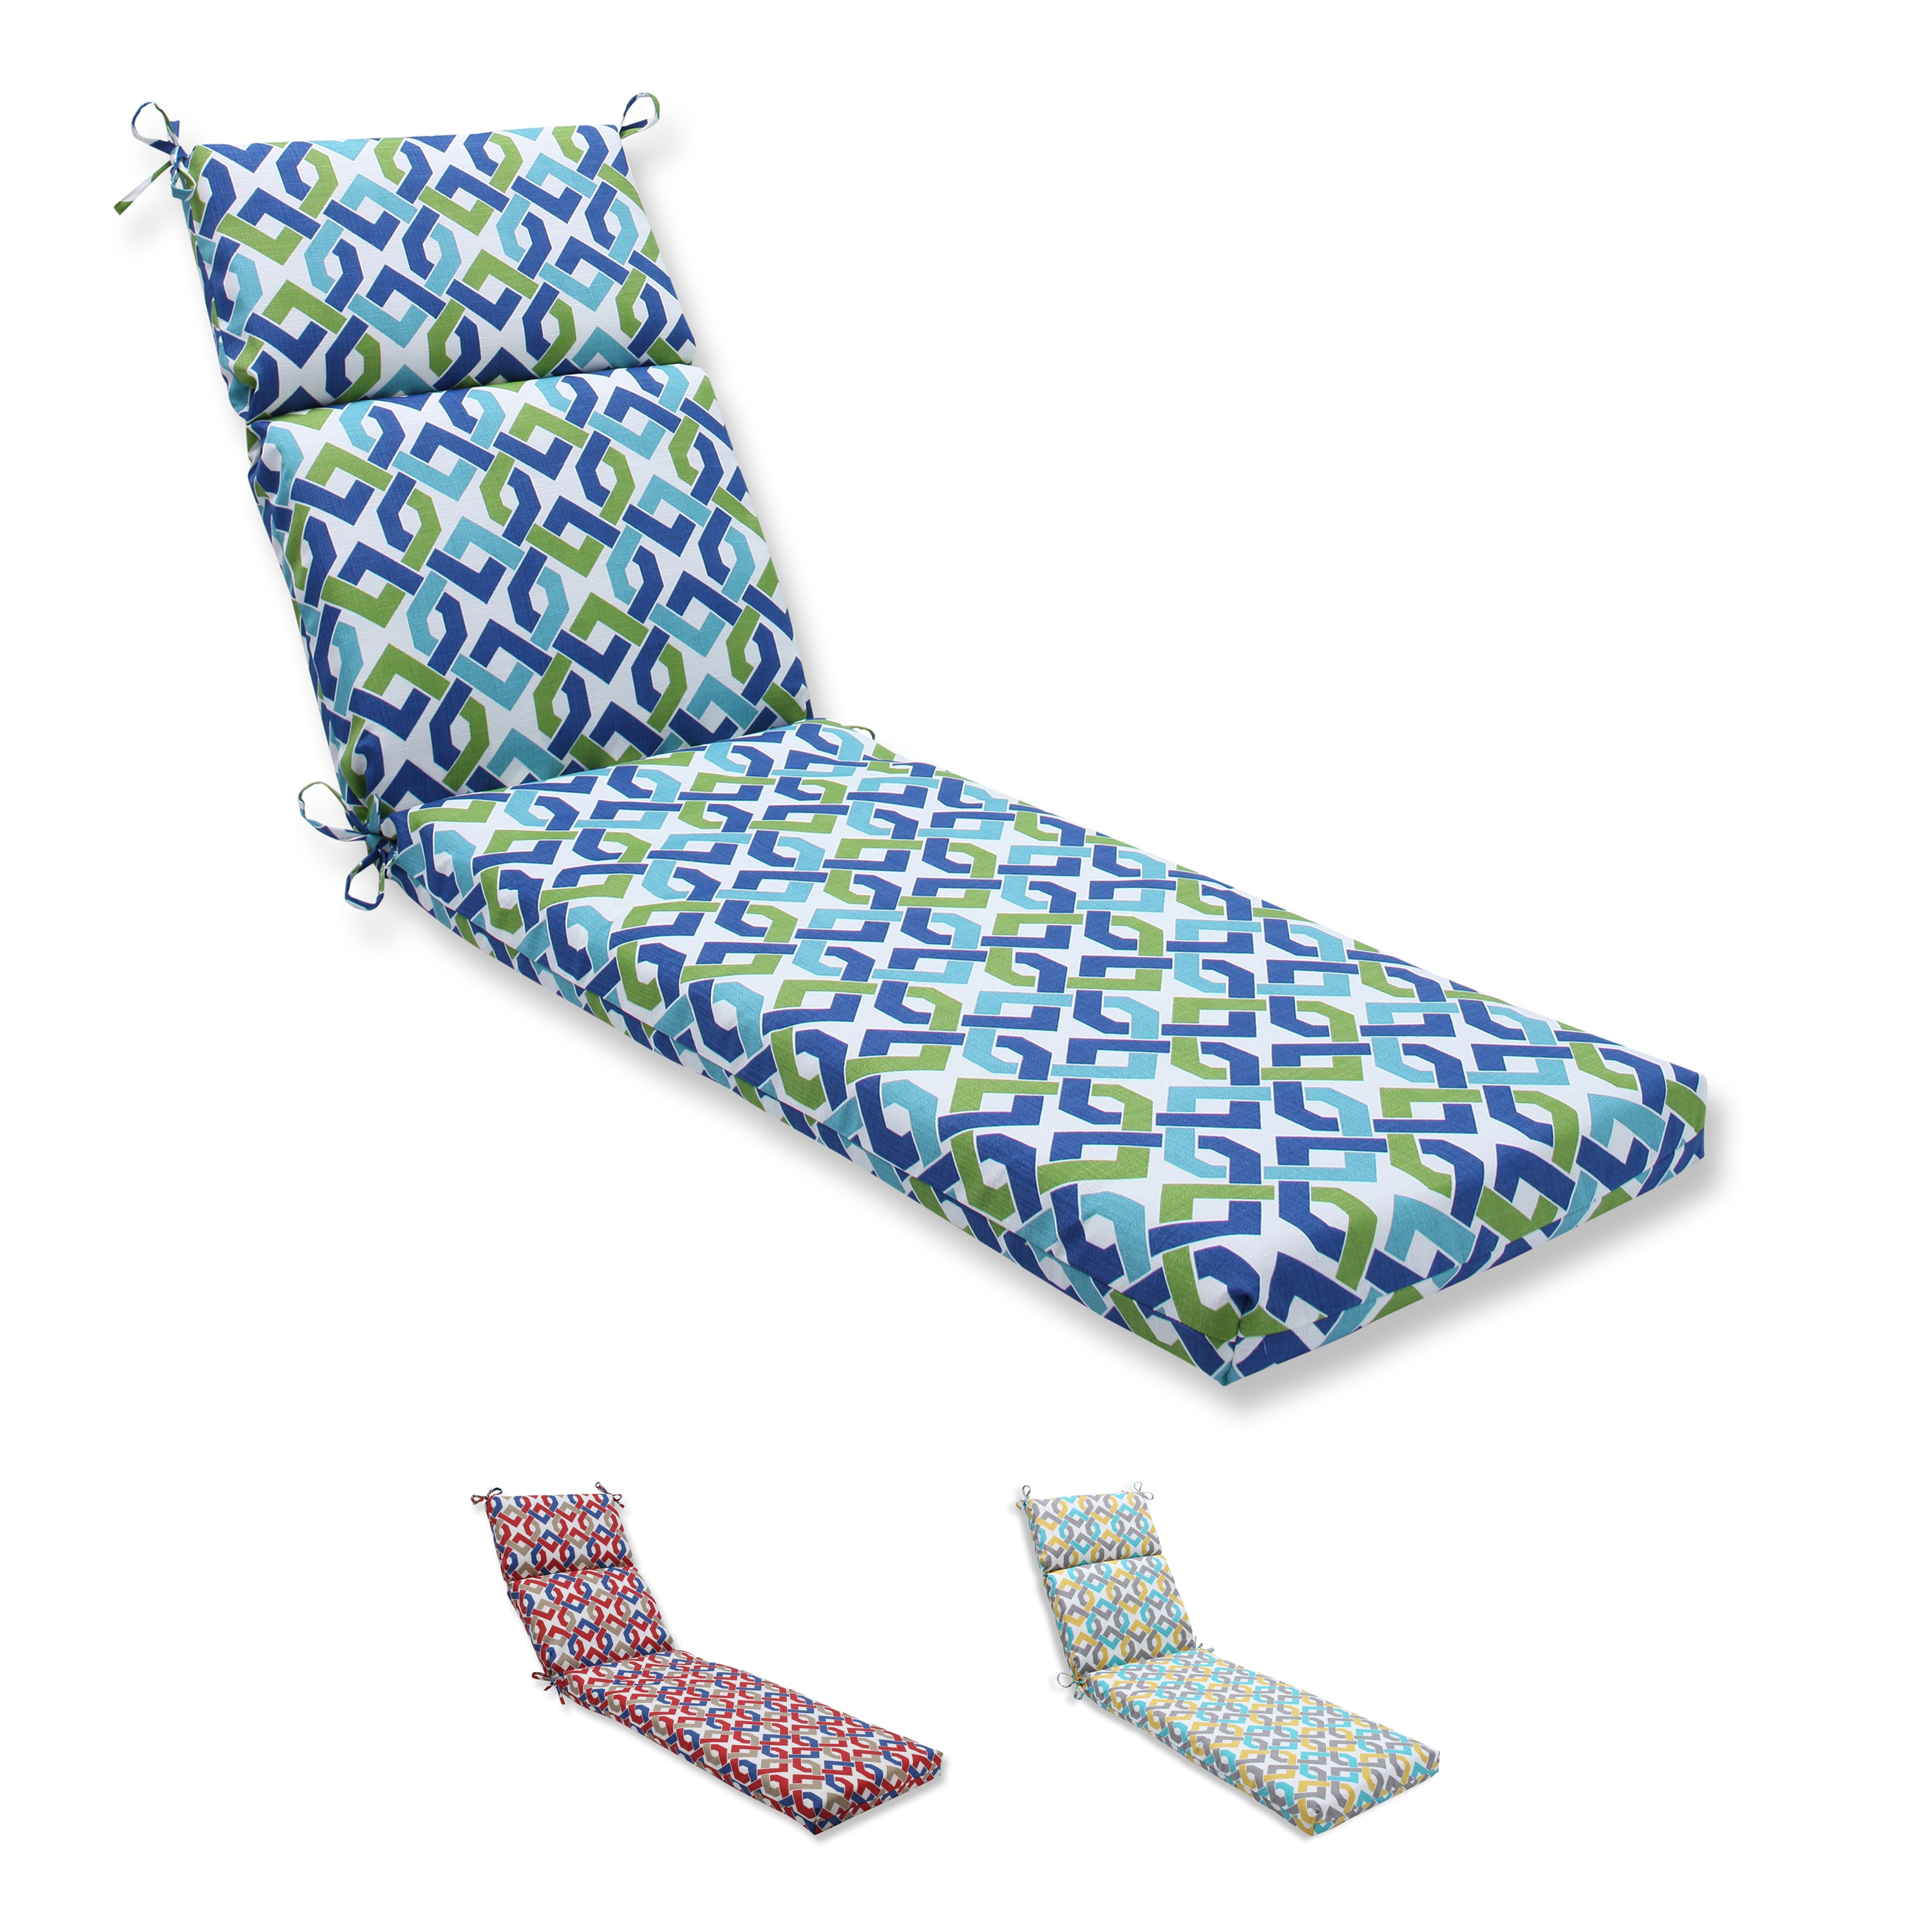 Cushion Perfect Lounge Indoor Reiser Outdoor Pillow Chaise QsdthrC